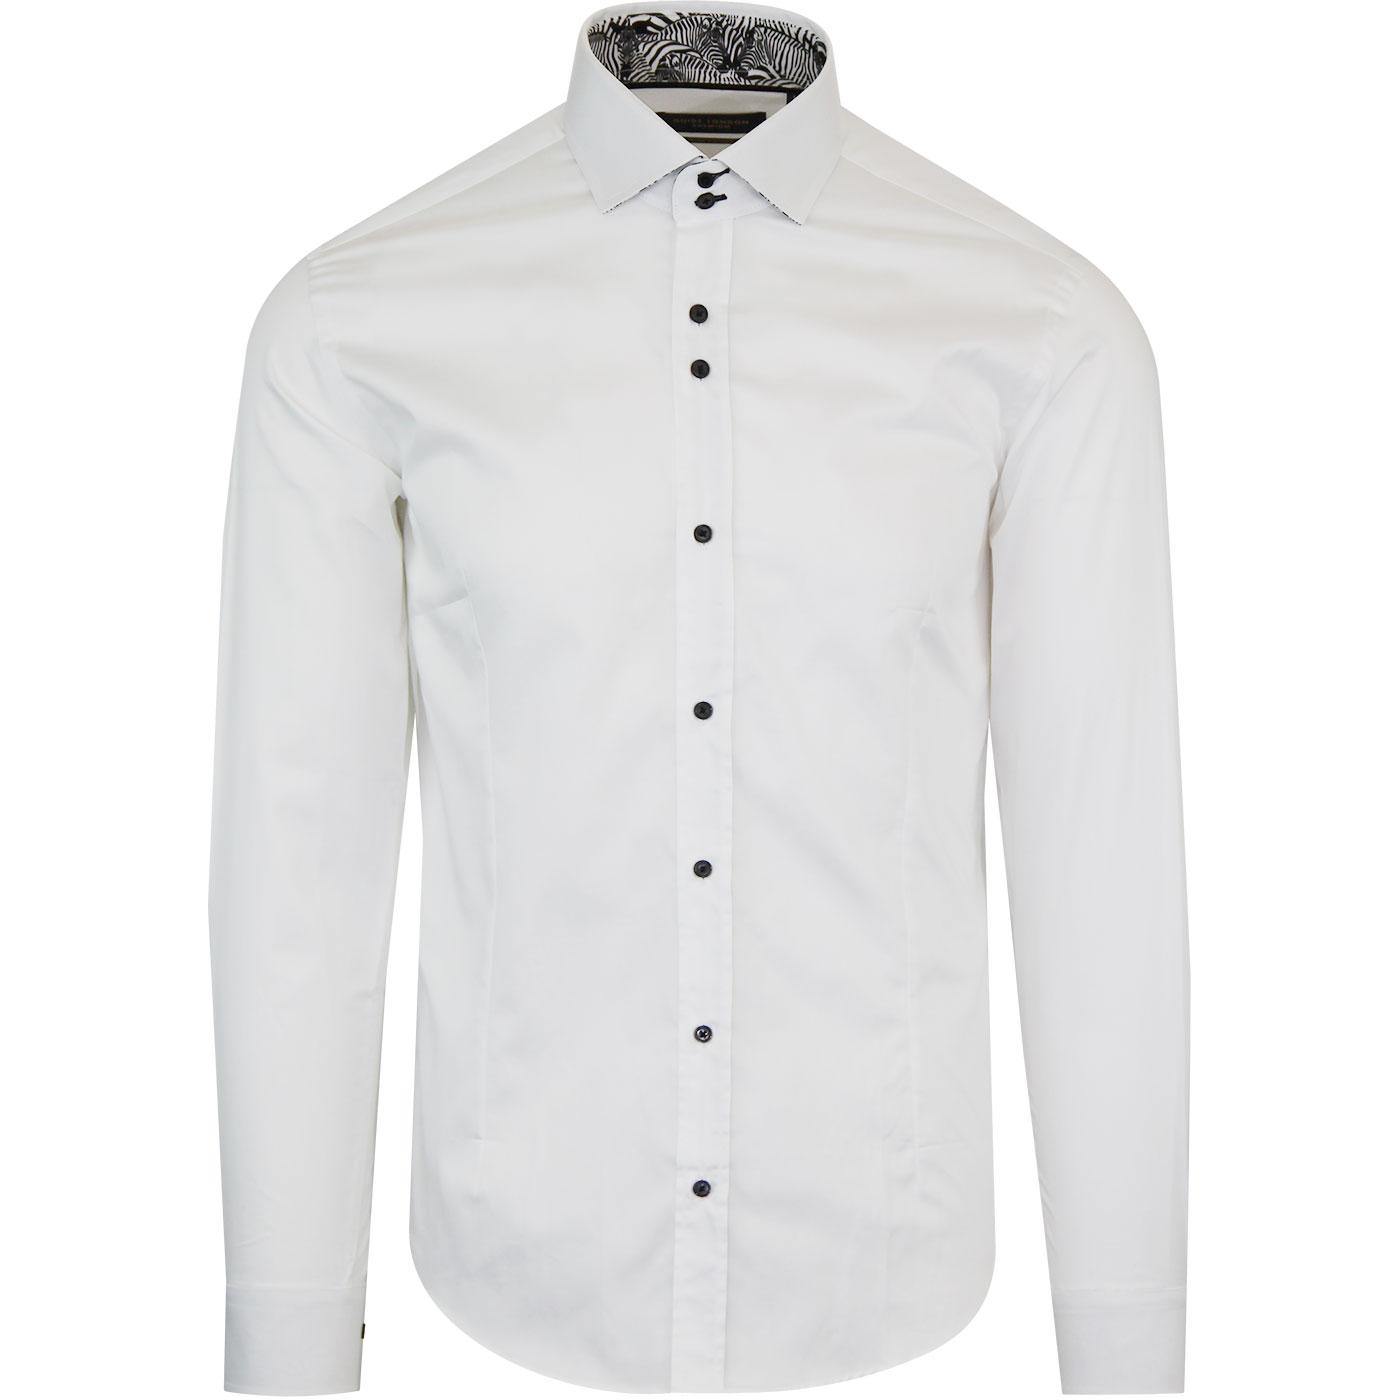 GUIDE LONDON Retro Mod Zebra Trim Shirt (White)